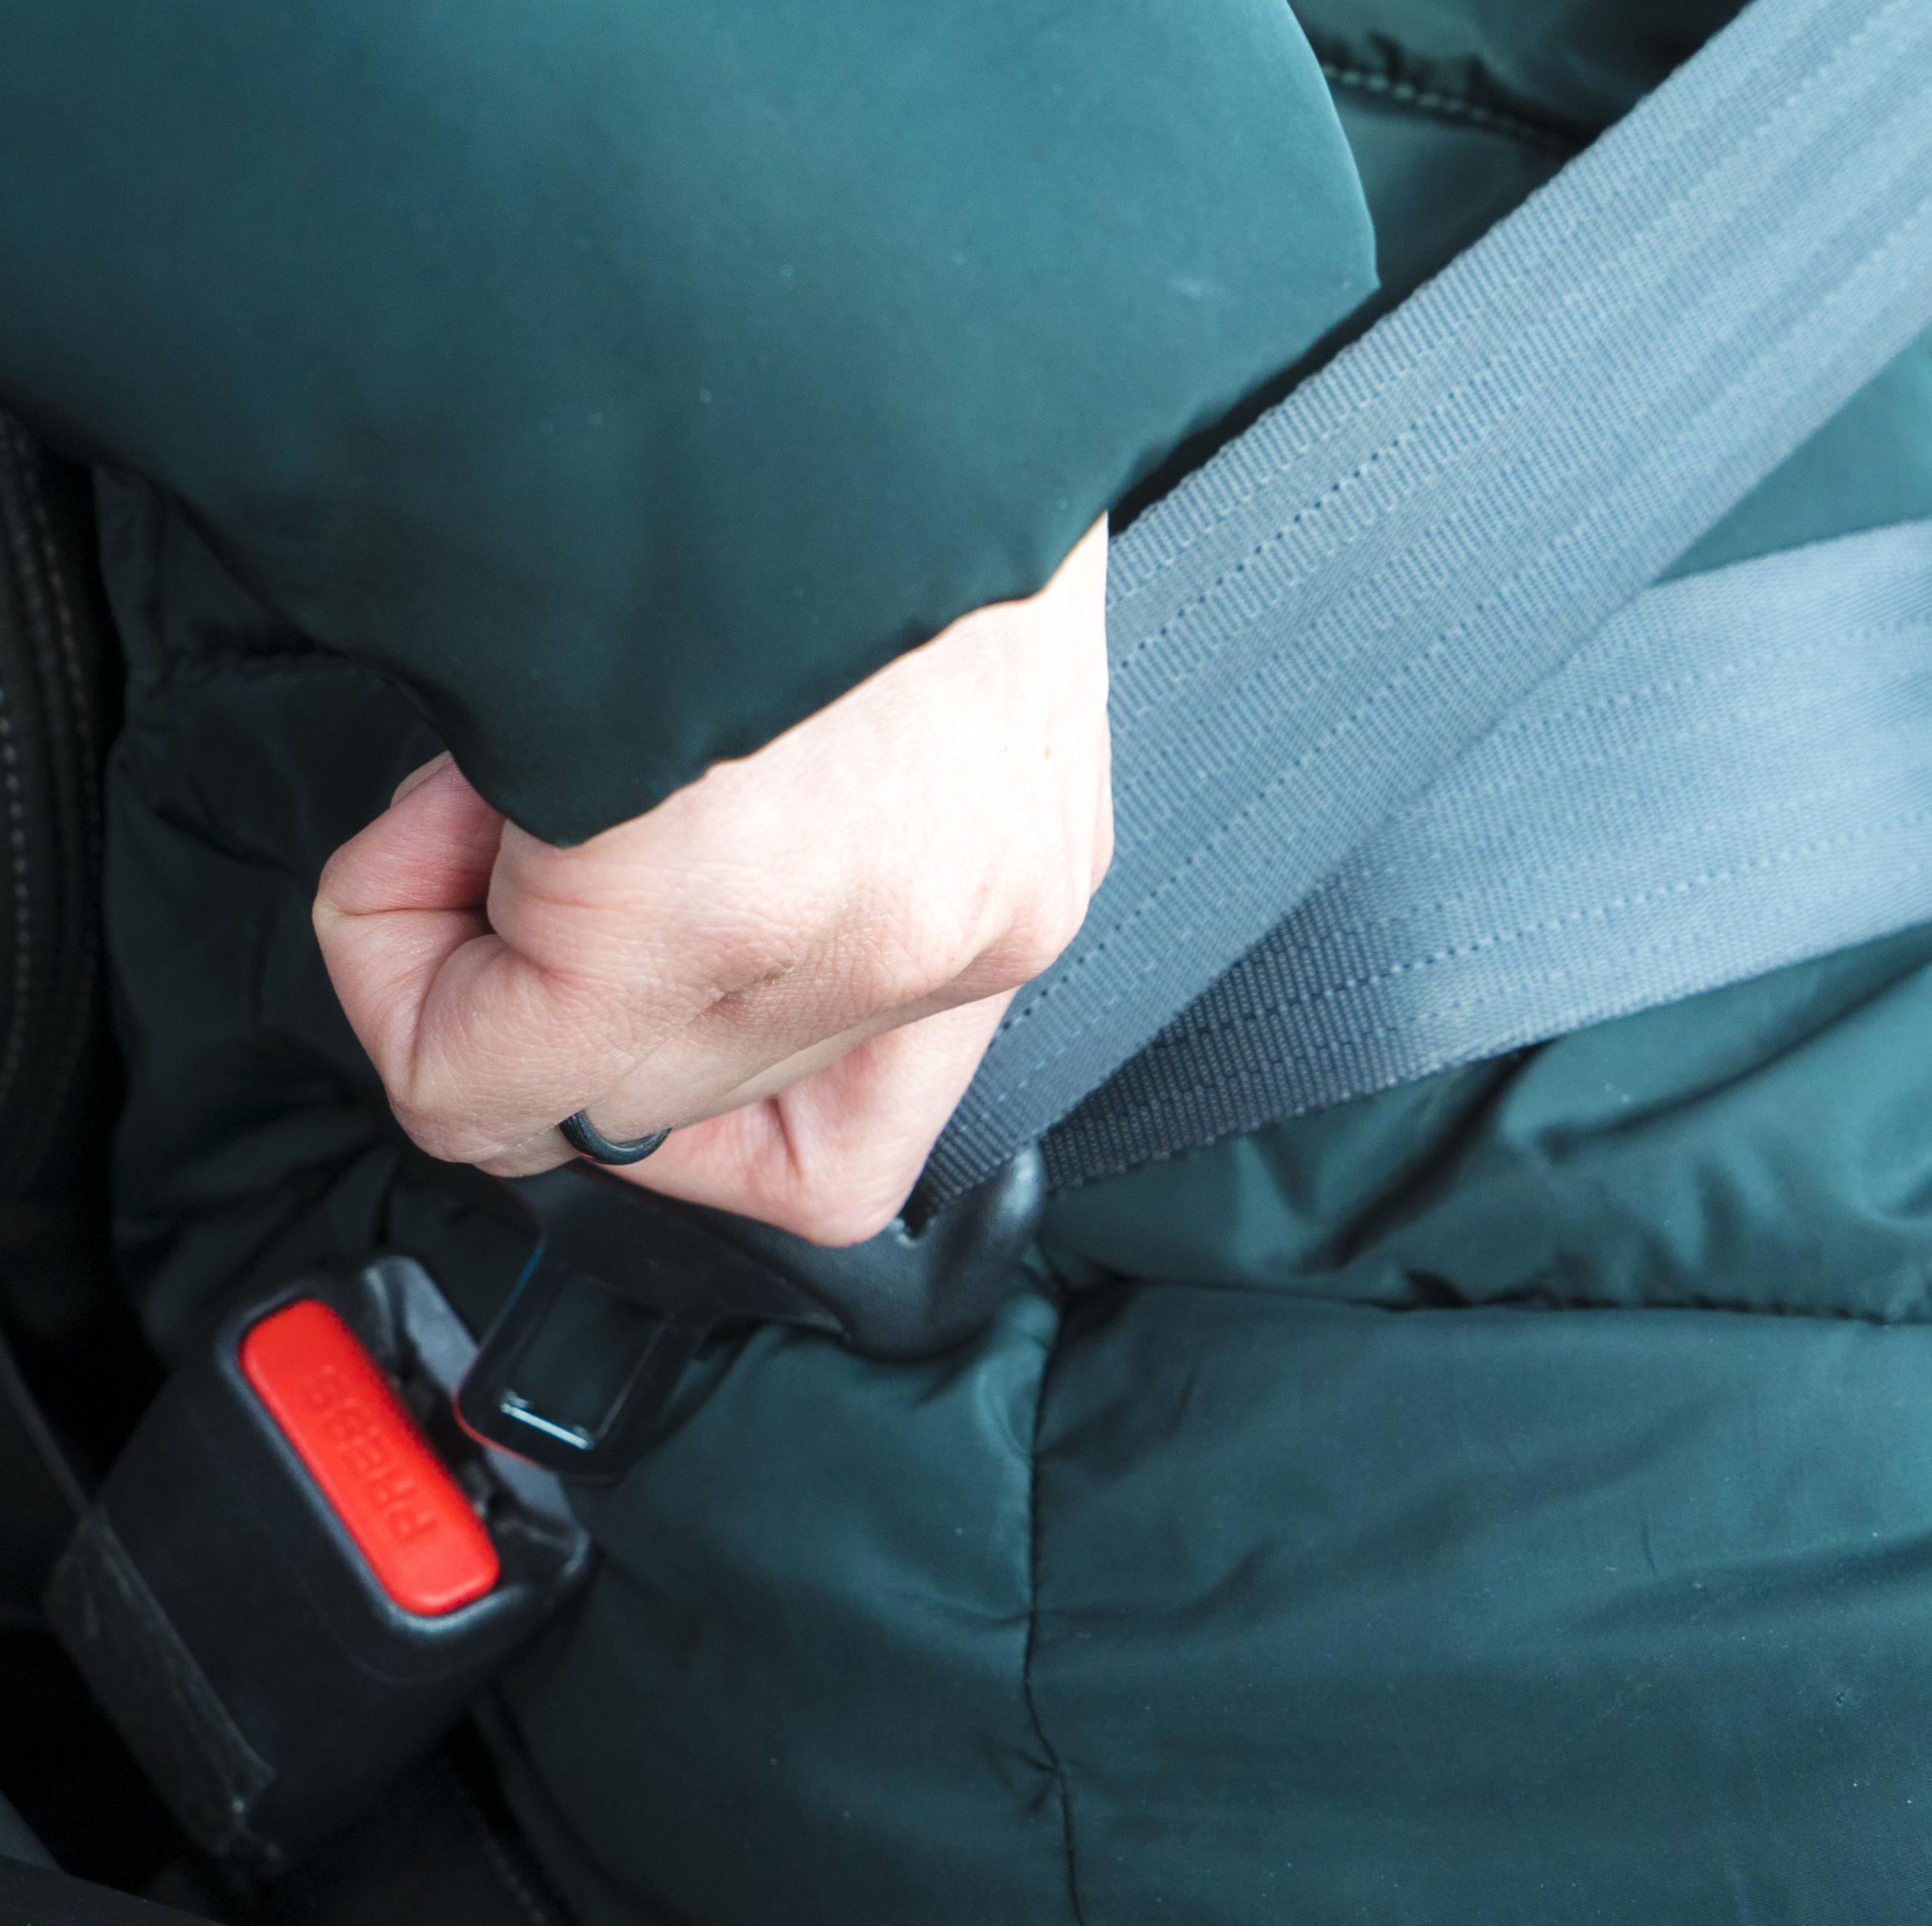 Drivers reminded to wear seatbelts or face a fine of up to £500